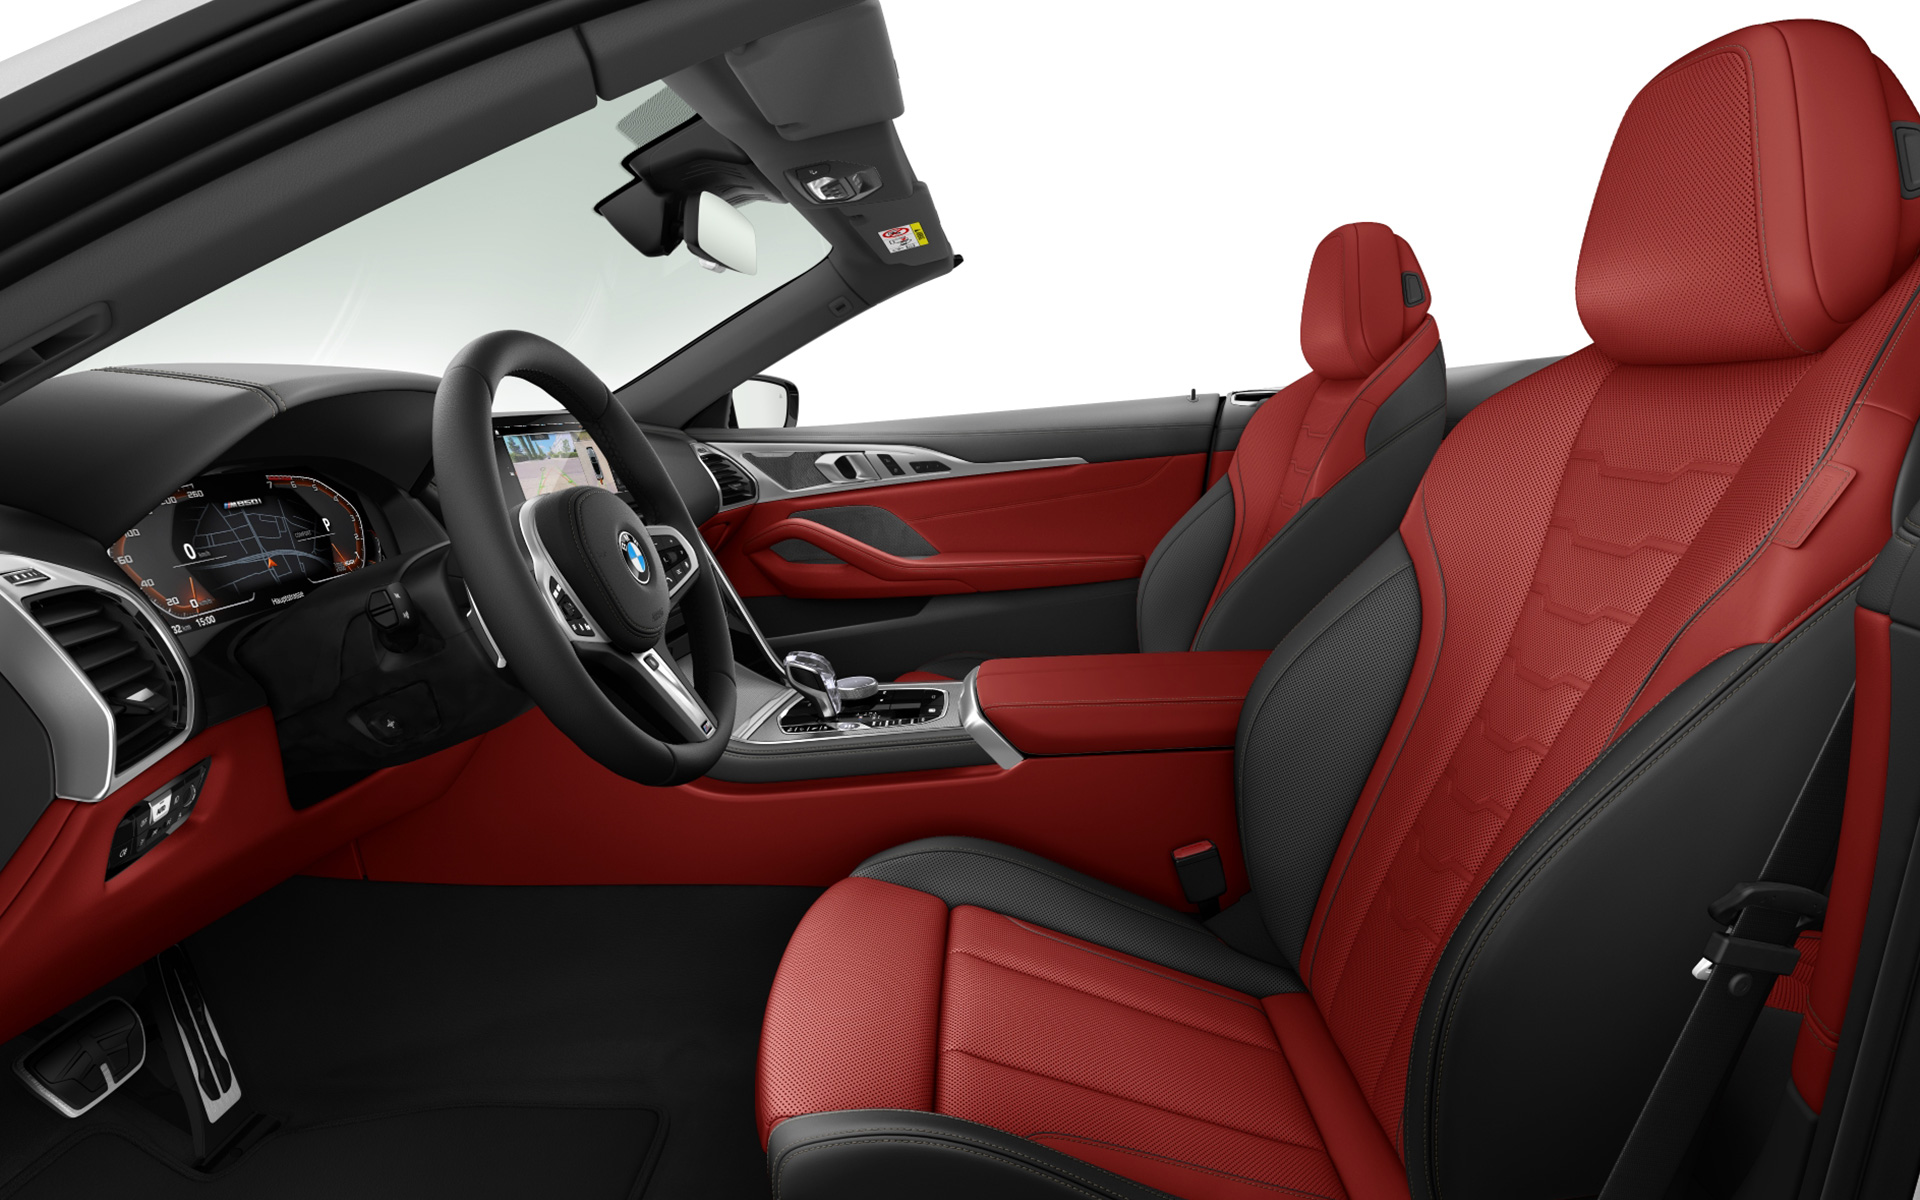 BMW Individual extended leather trim Merino Fiona Red/Black | Black